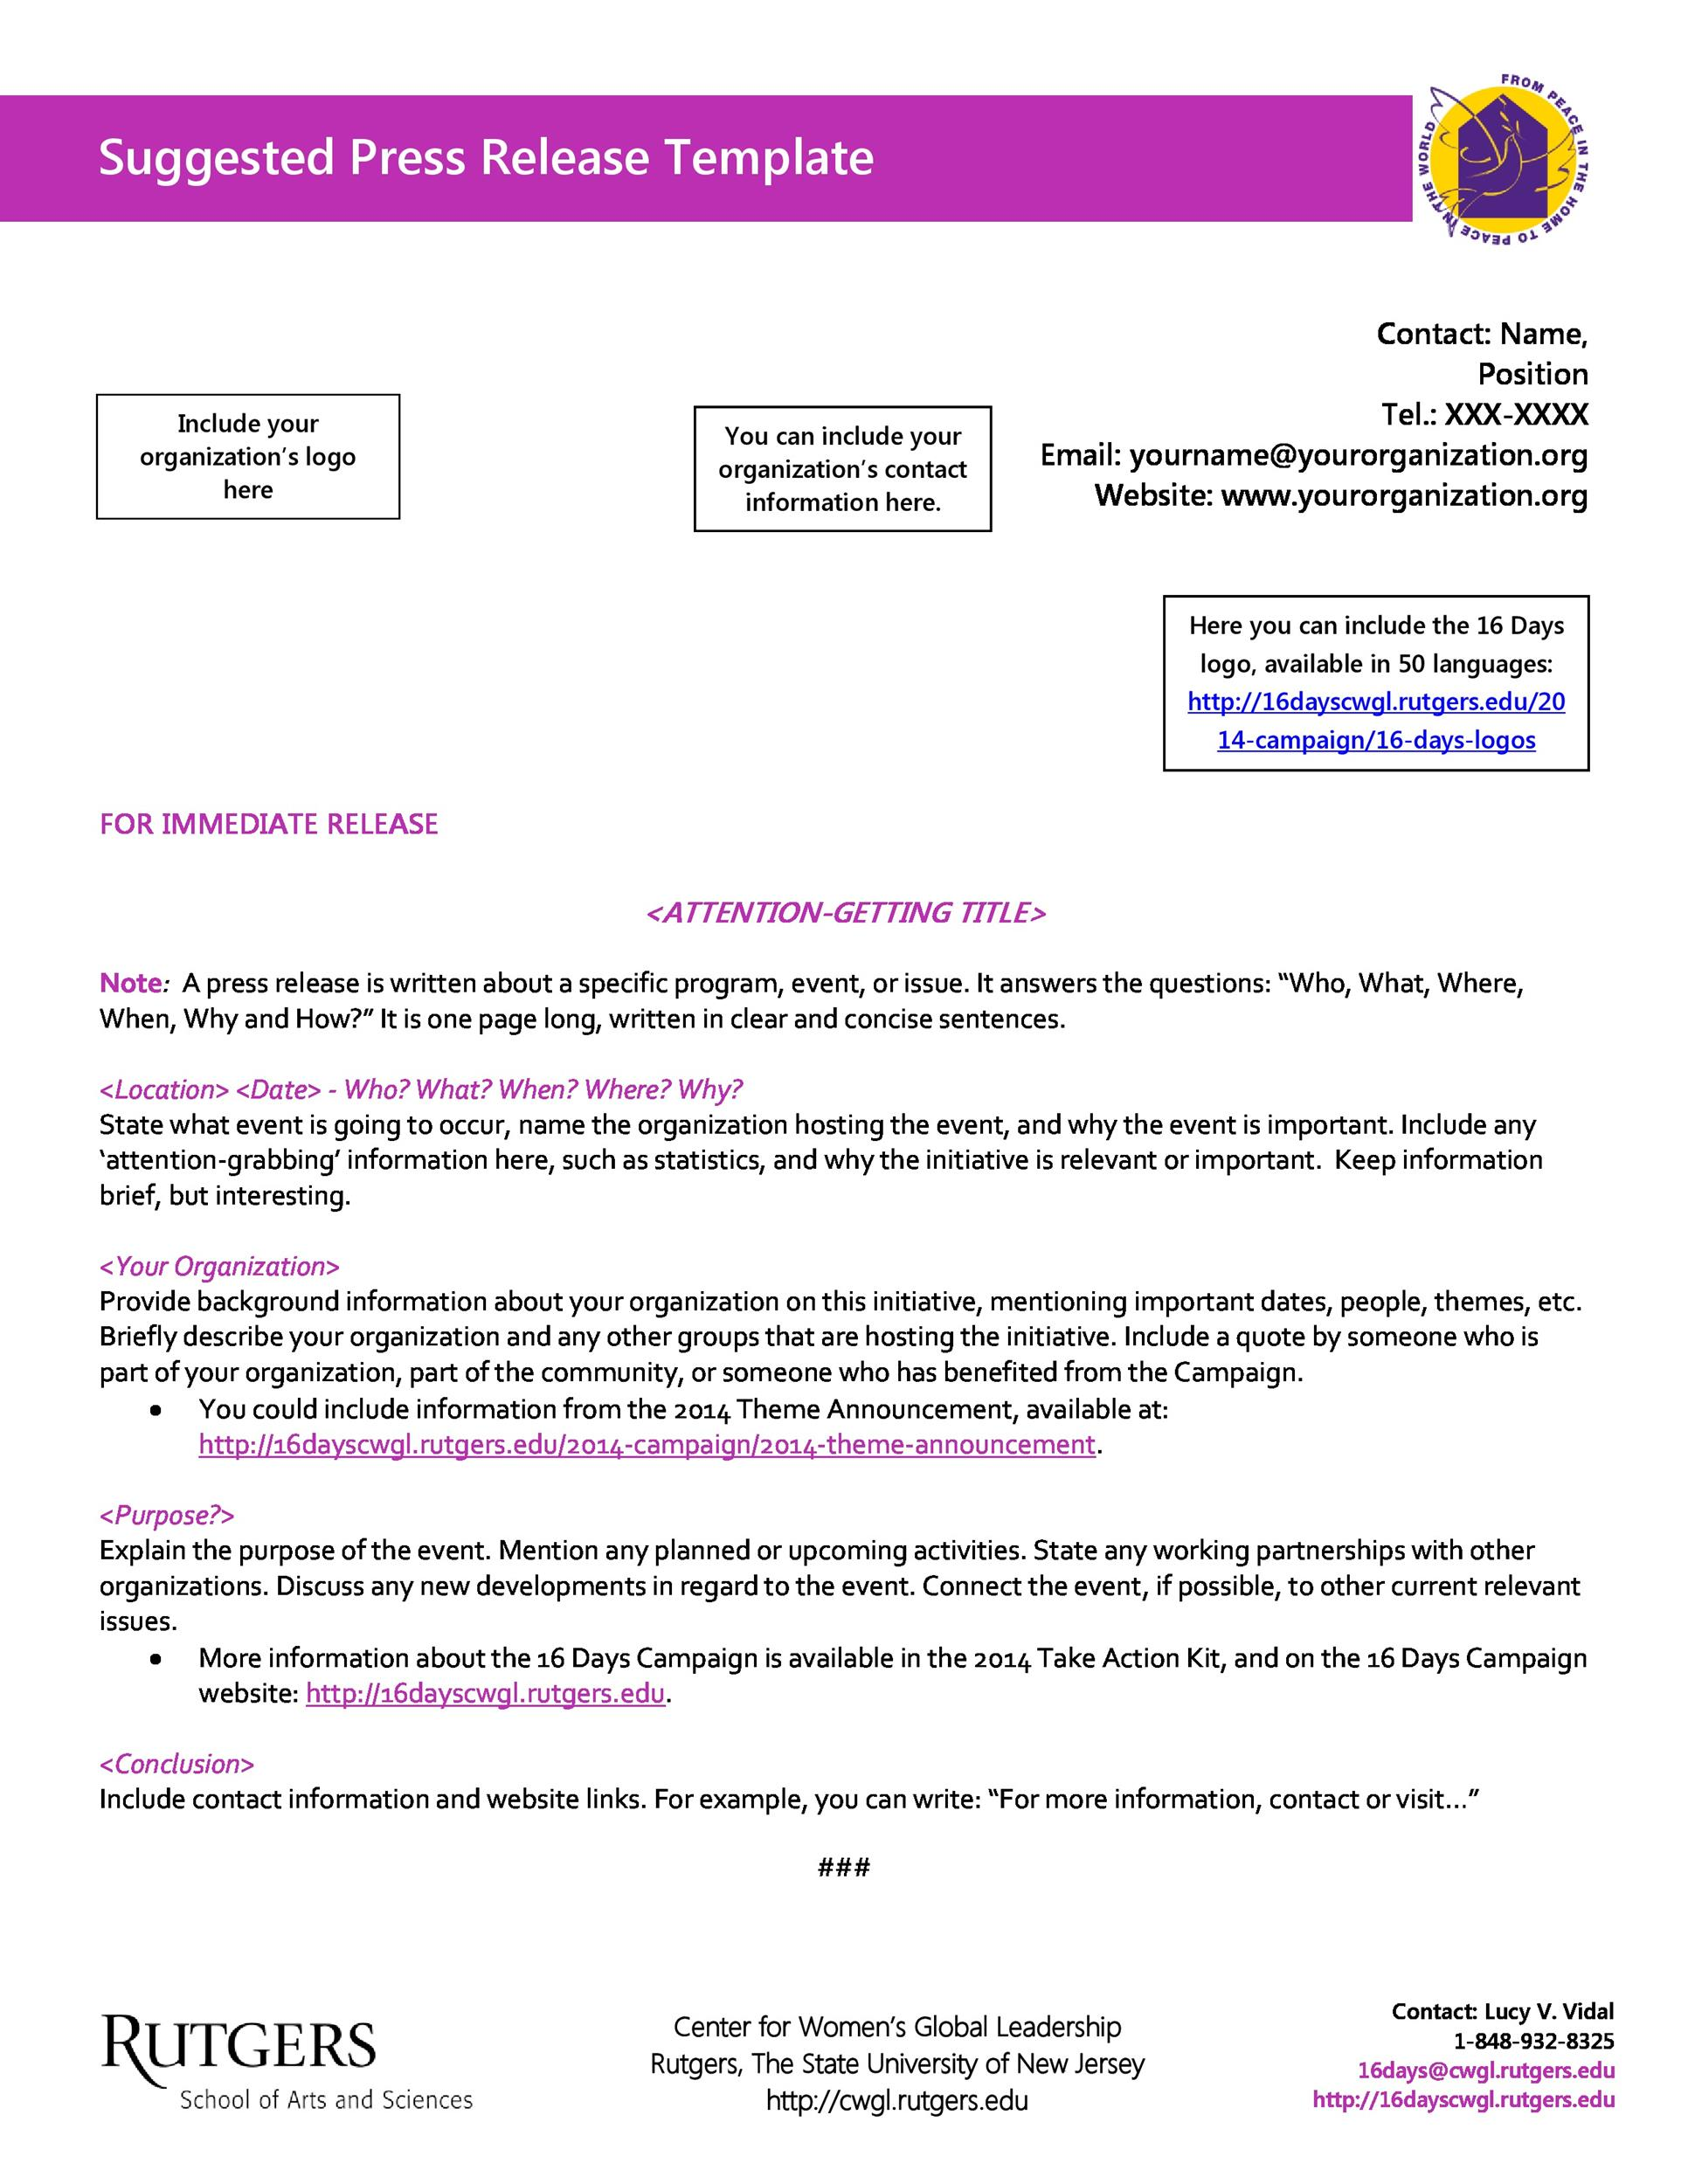 Free Press release template 29